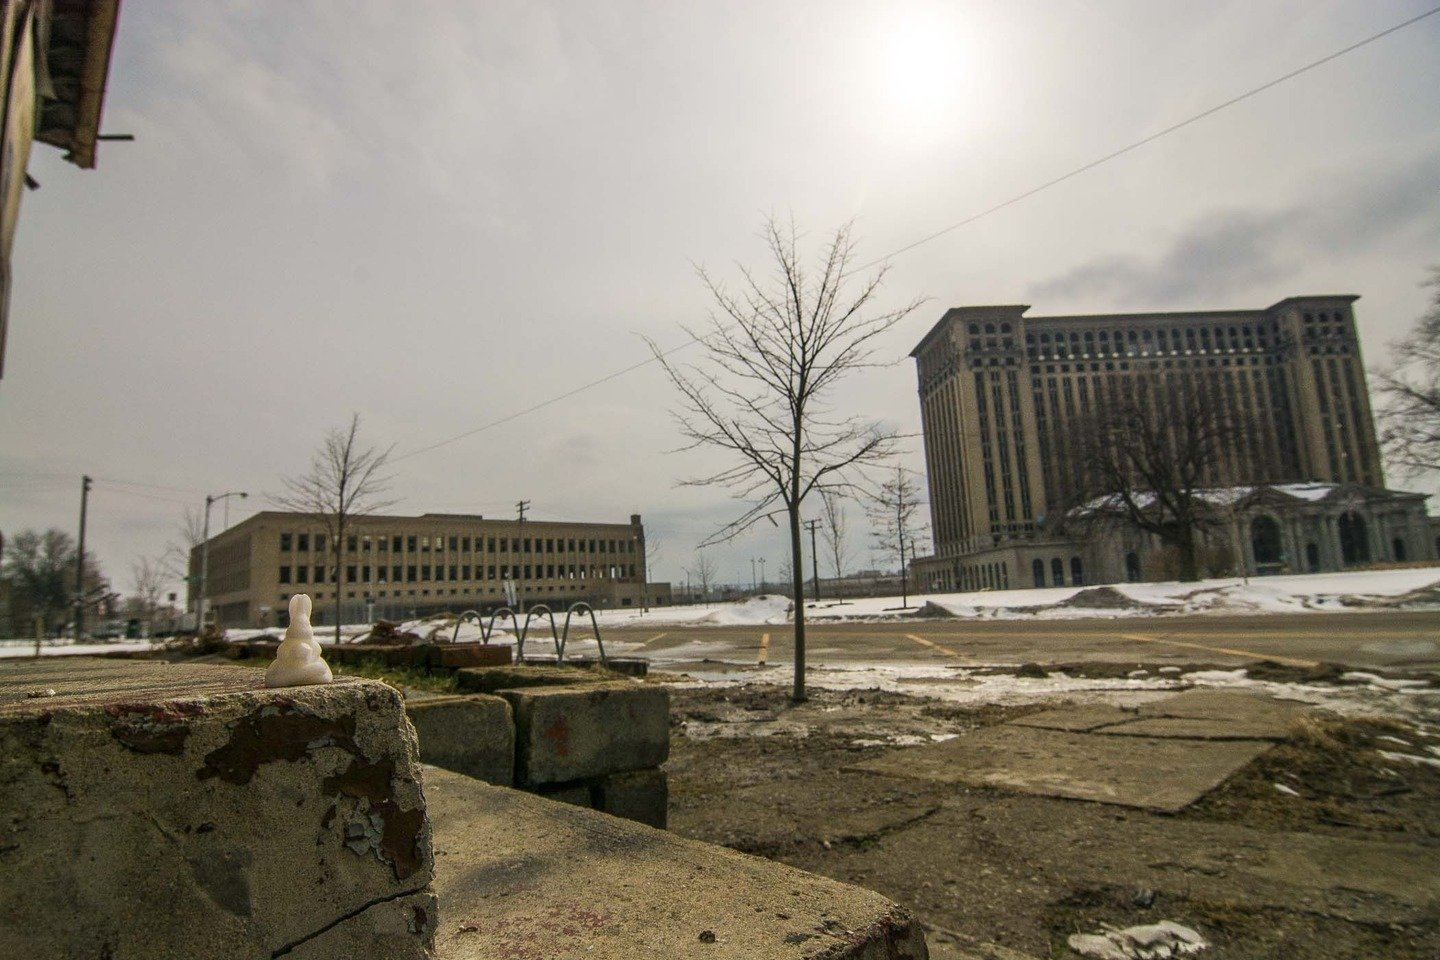 Tony Barchock's photo / Detroit / United States